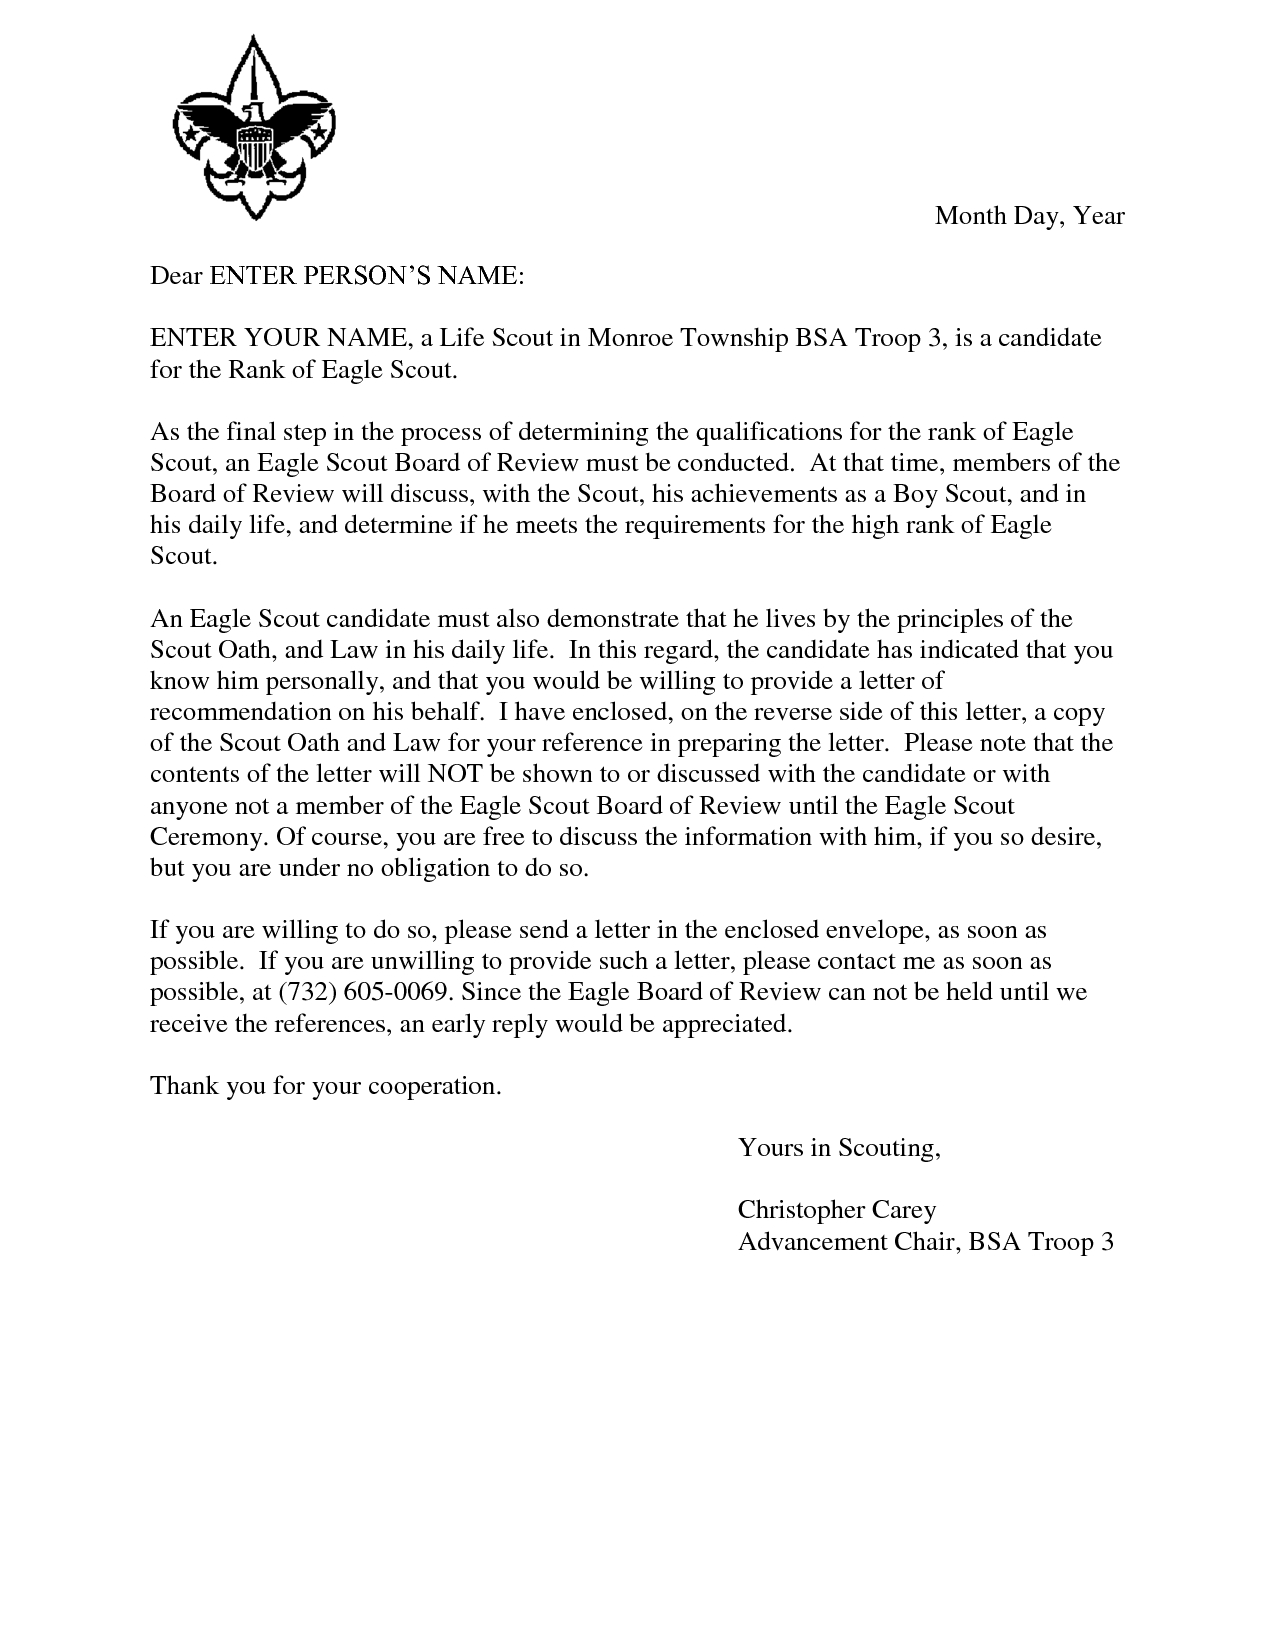 Reference Letter Template - Eagle Scout Reference Request Sample Letter Doc 7 by Hfr990q